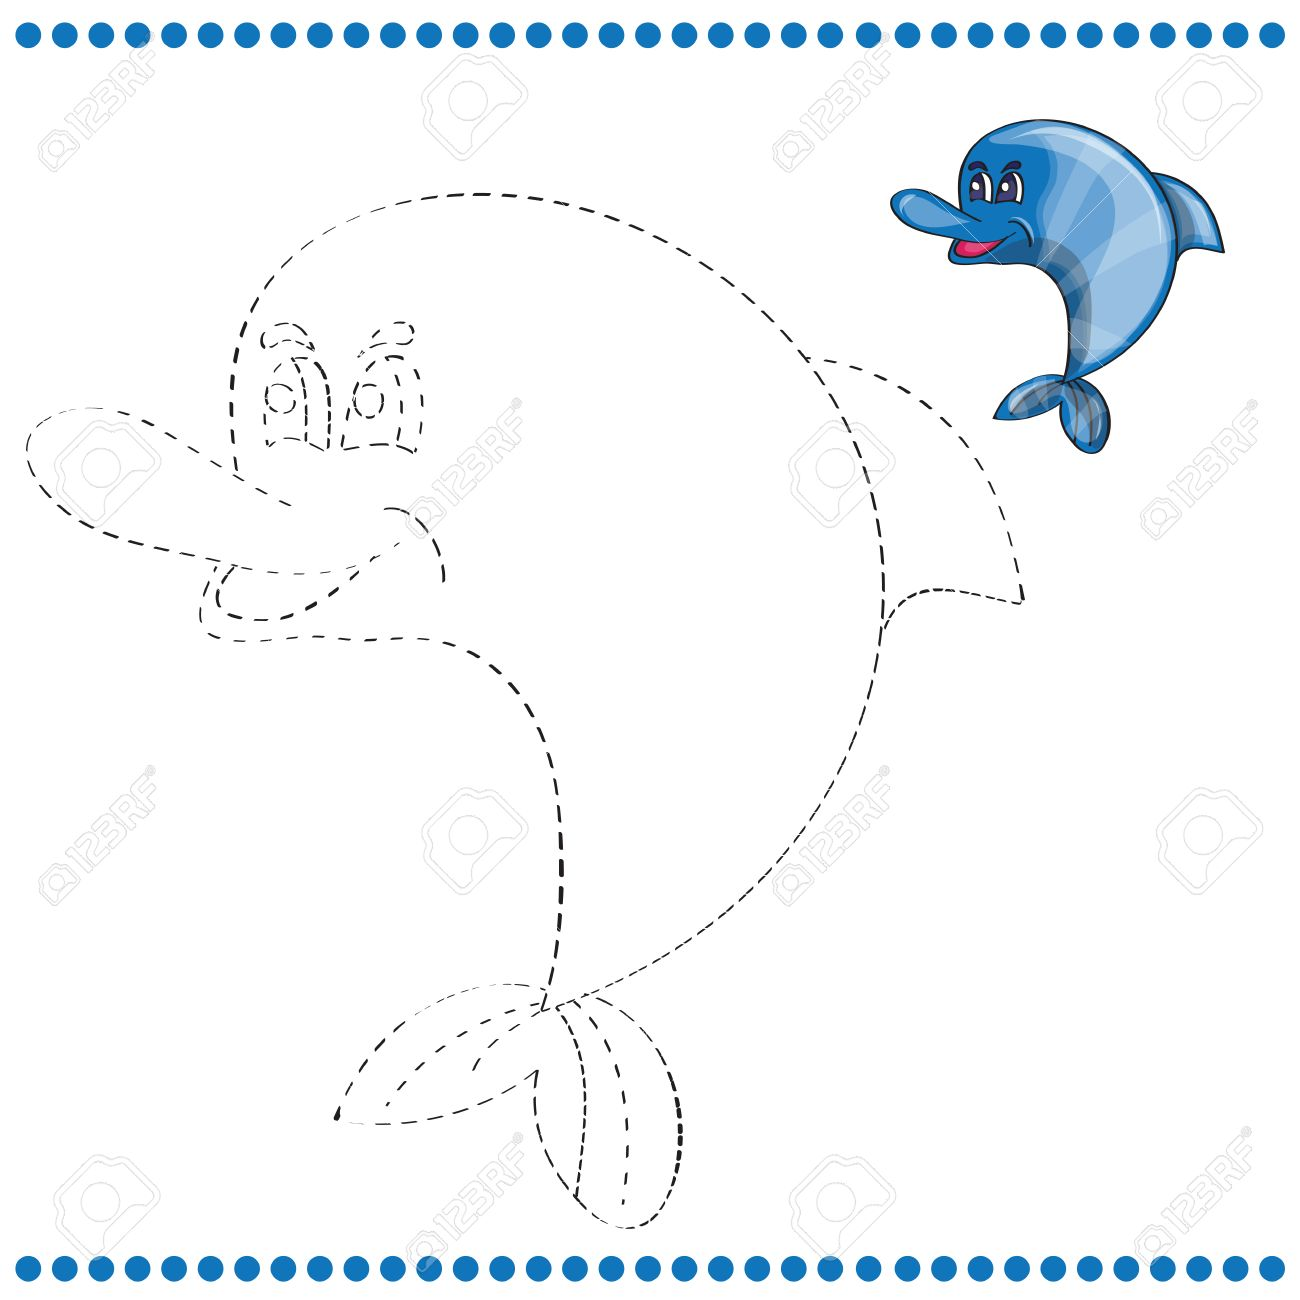 Connect The Dots And Coloring Page With Funny Dolphin Royalty Free ...